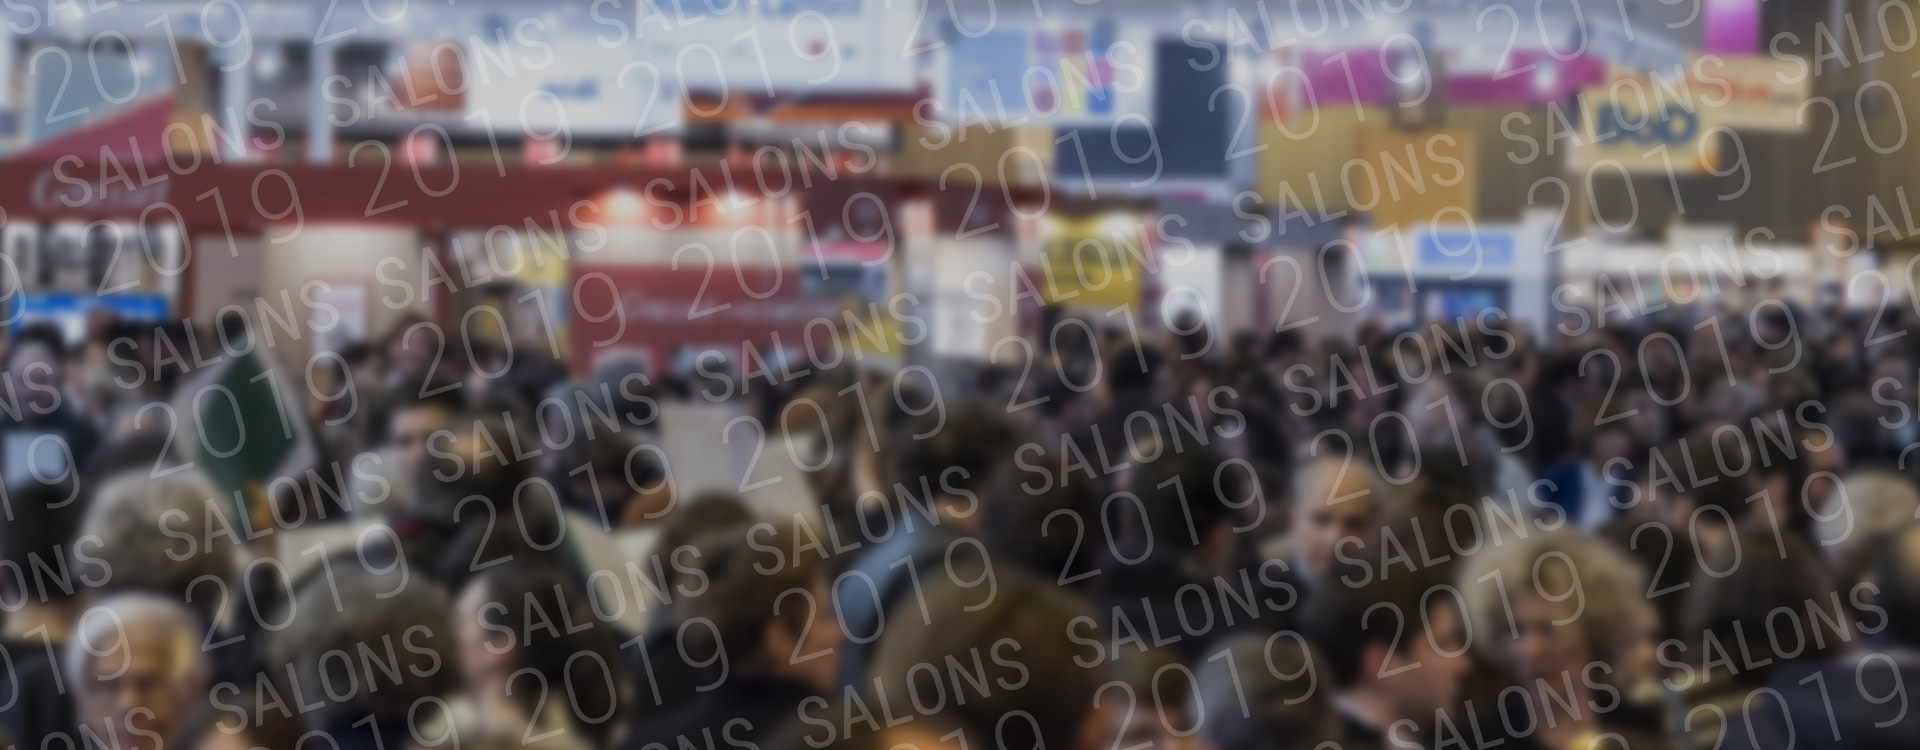 background-salon2019